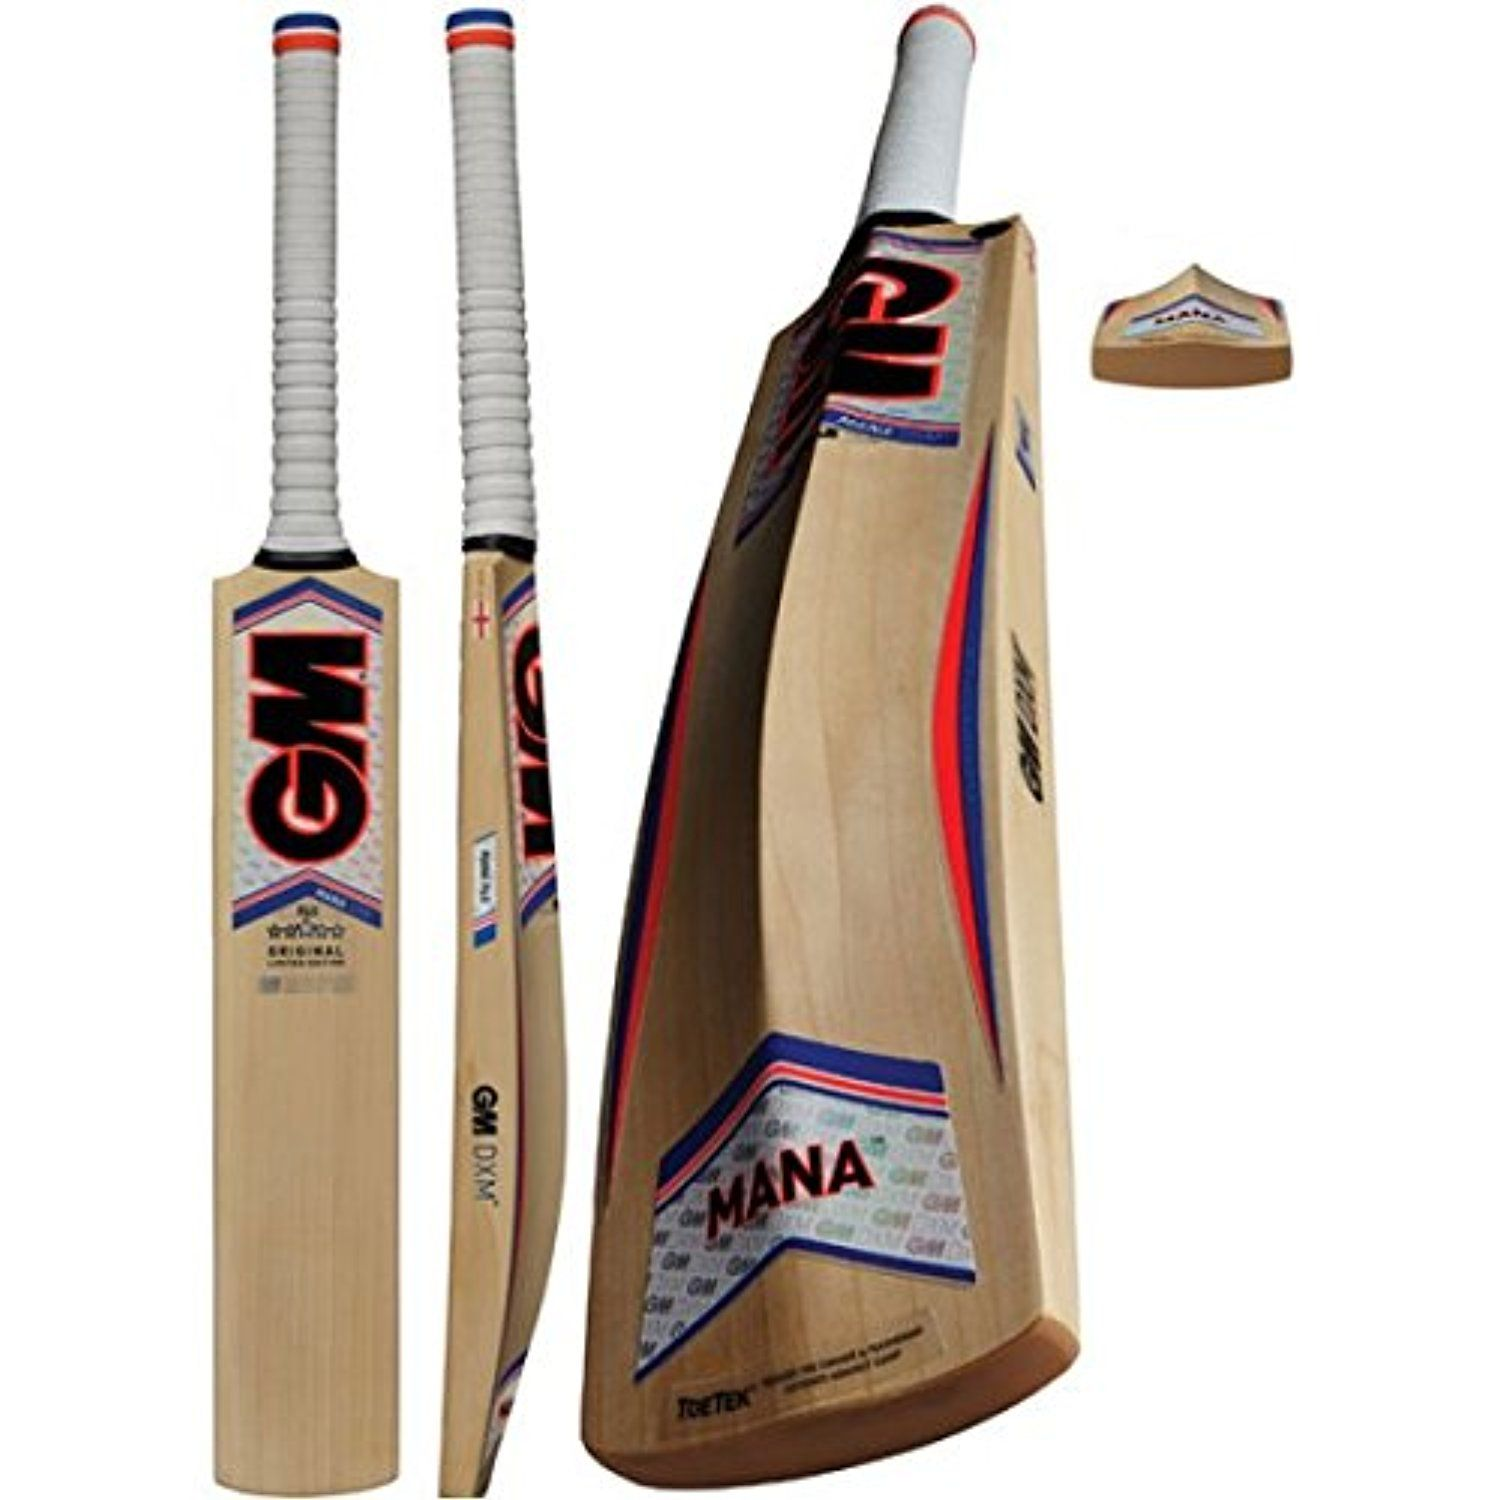 e5164022b1b GM Mana F4.5 Dxm Original English Willow Cricket Bat Size-6 -- Awesome  products selected by Anna Churchill